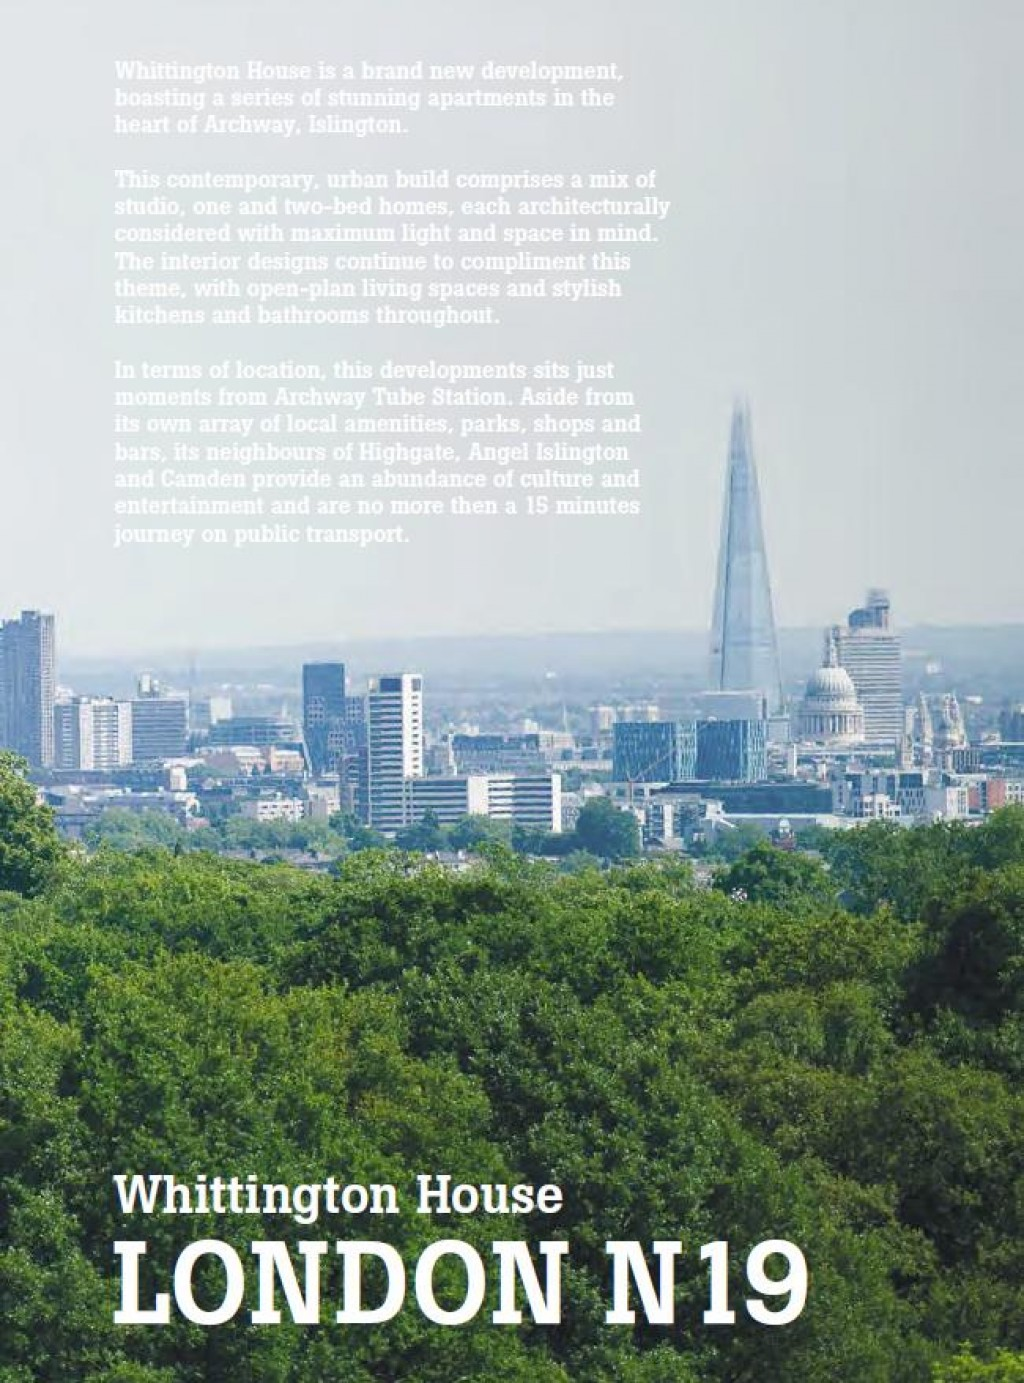 Images for Whittington House, 766 Holloway Road EAID:c8d5f0ae42d594d169bca90f3b8b041a BID:1